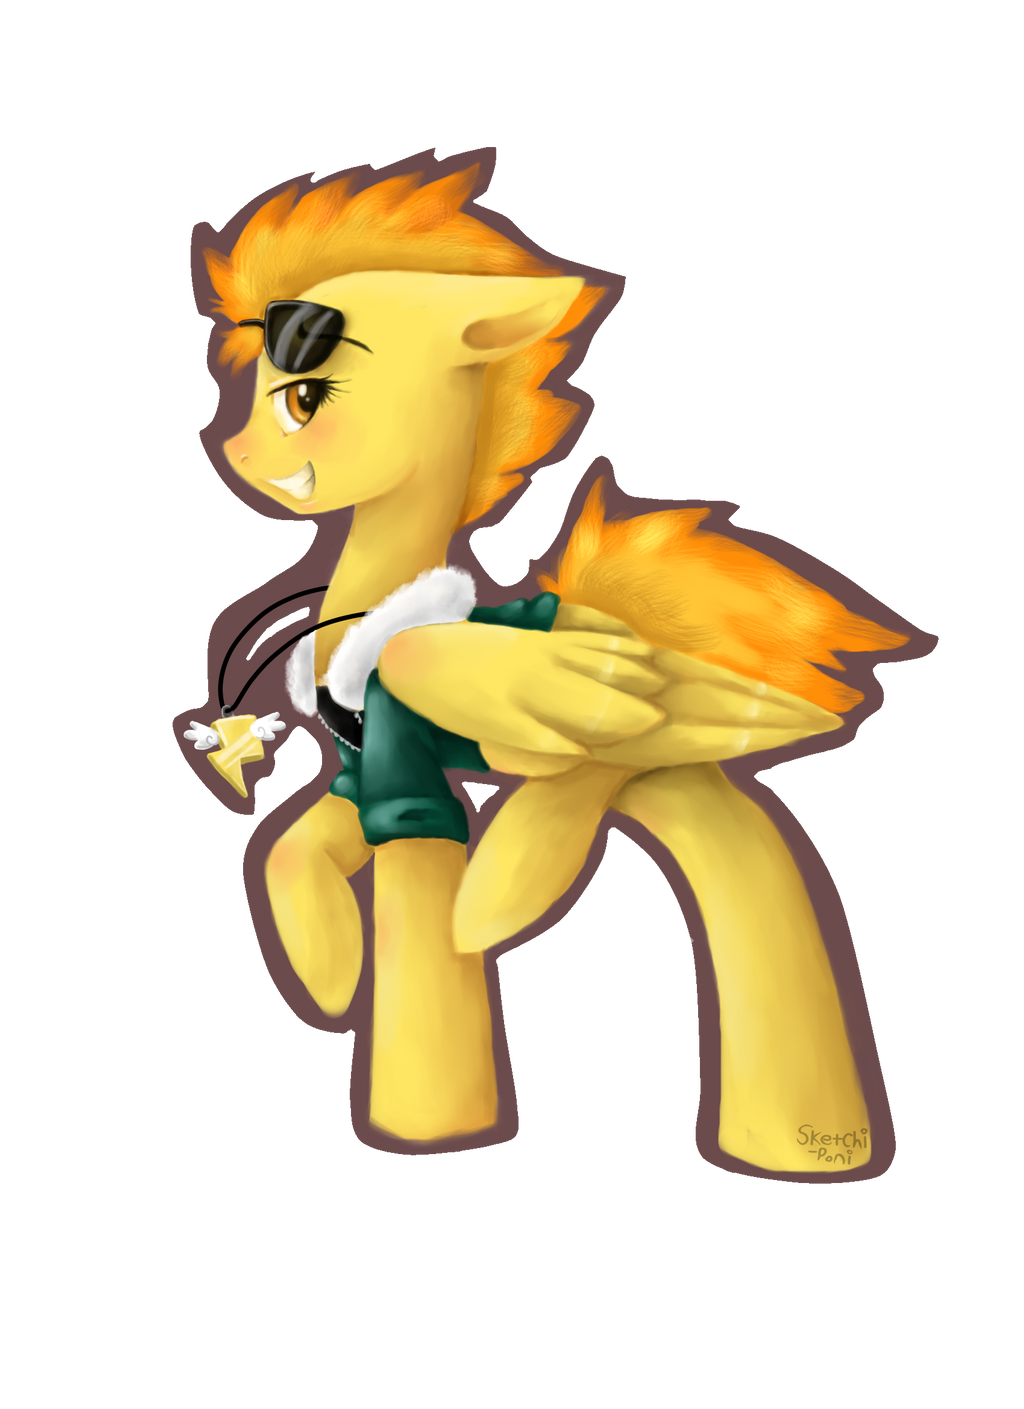 Spitfire by iSketchi